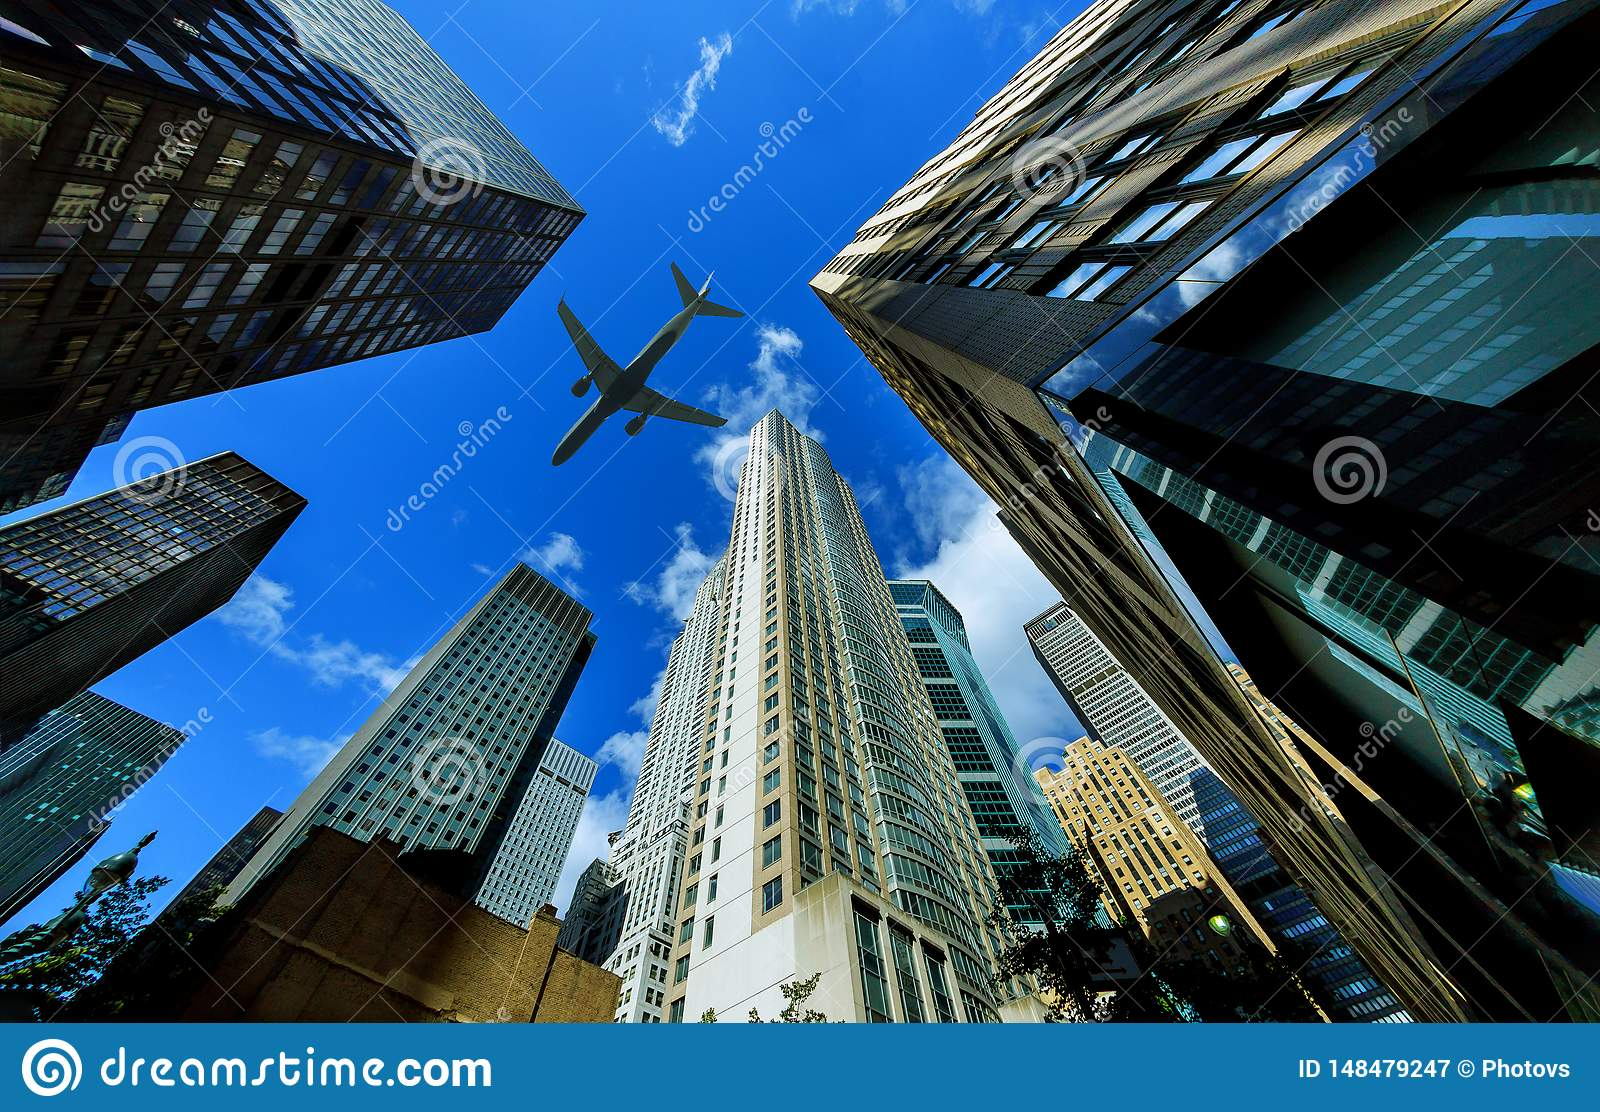 Looking up at New York city skyscrapers in financial district, NYC USA plane flying